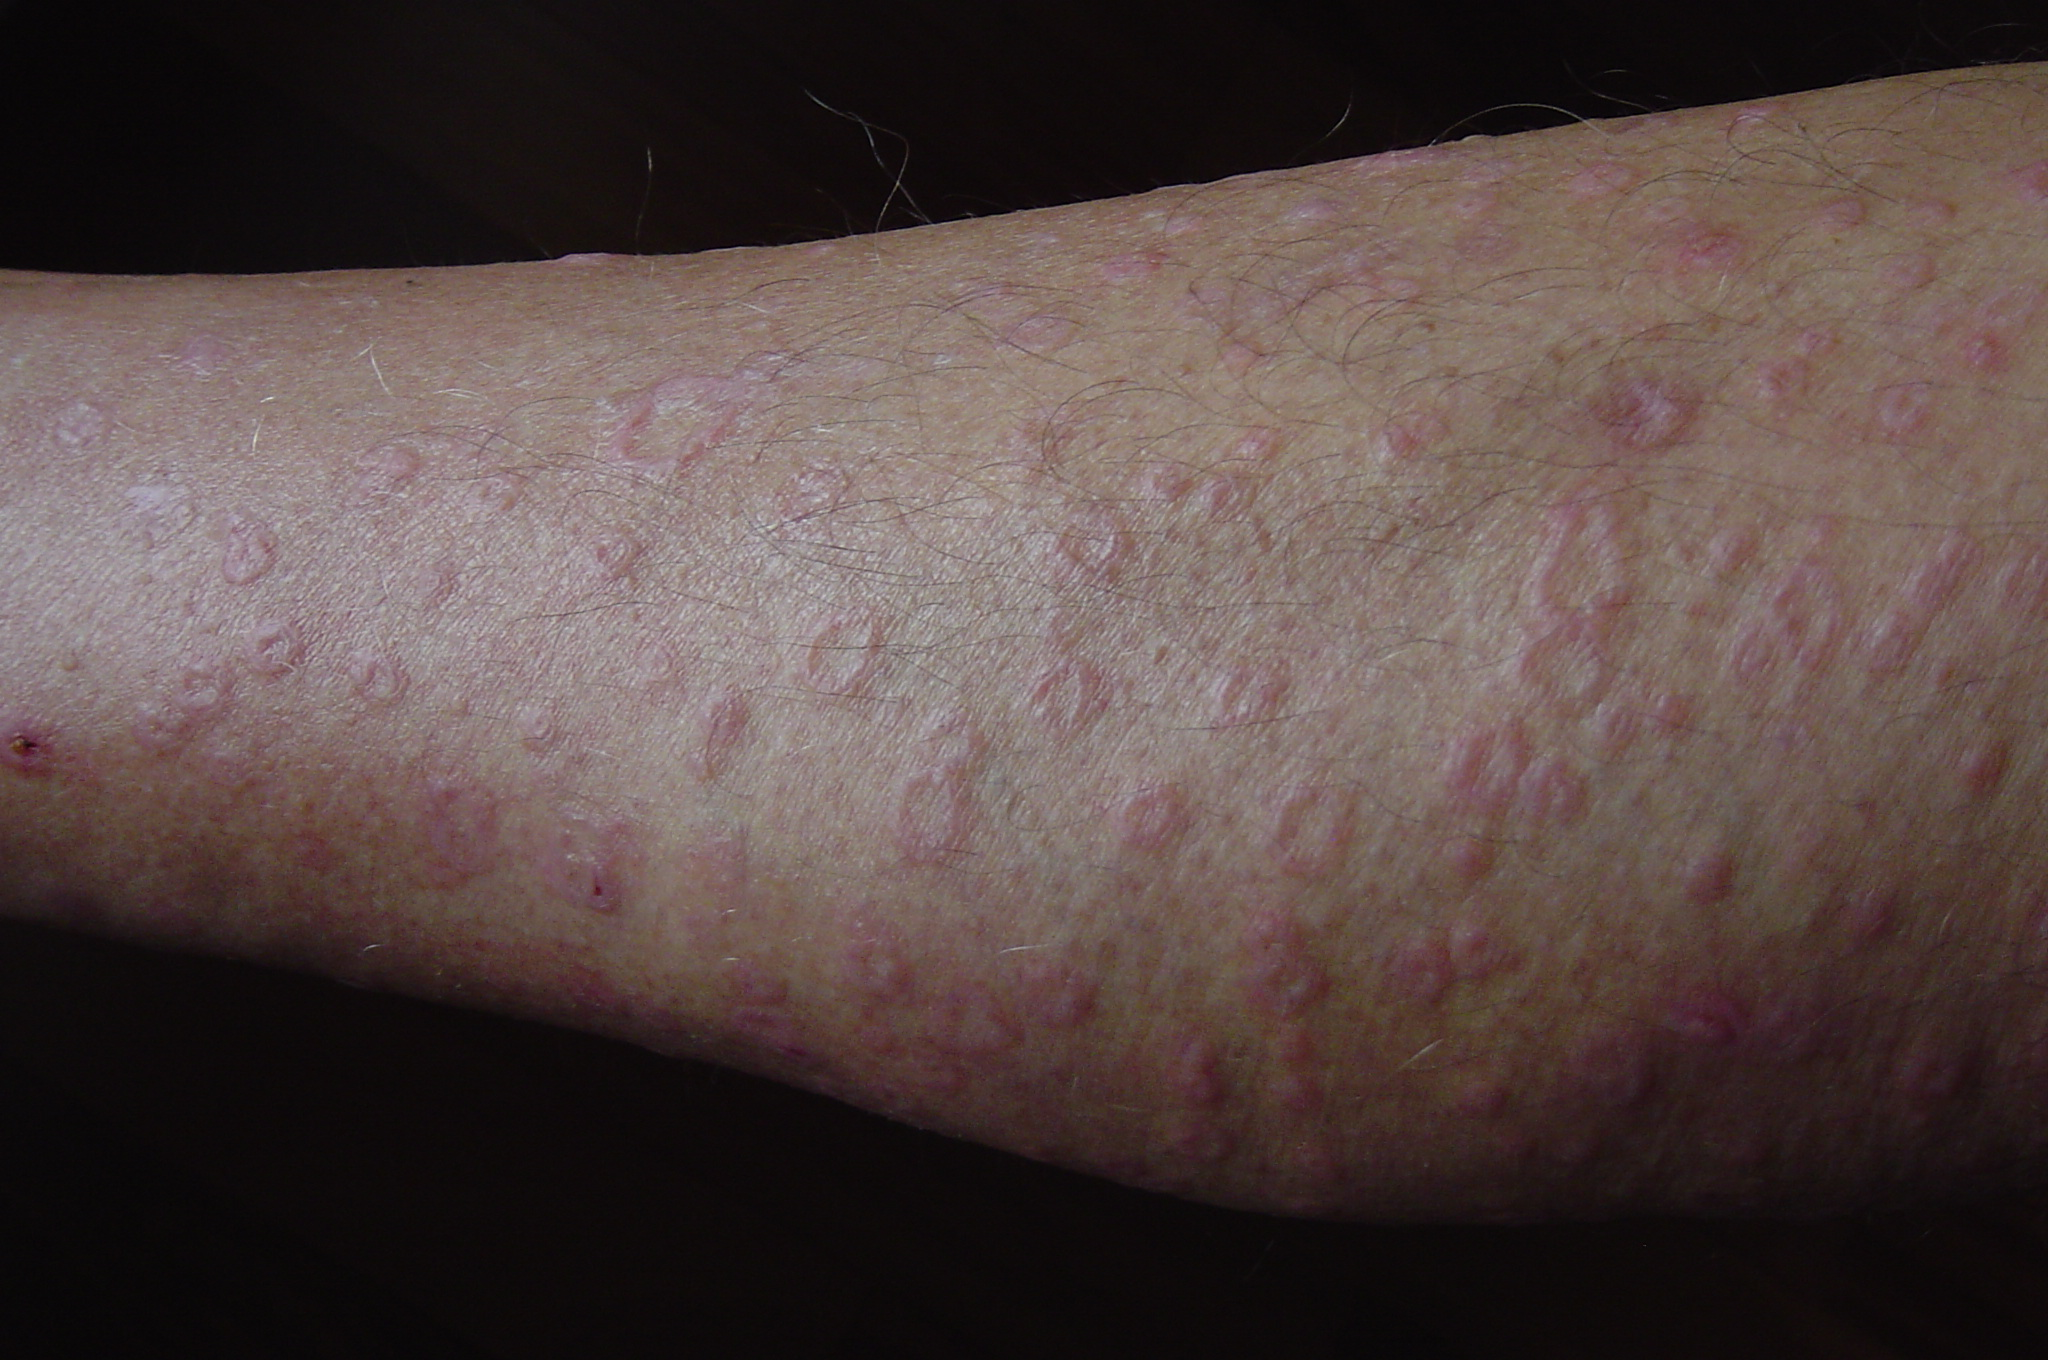 Vascular Rashes On Legs - Doctor answers on HealthTap